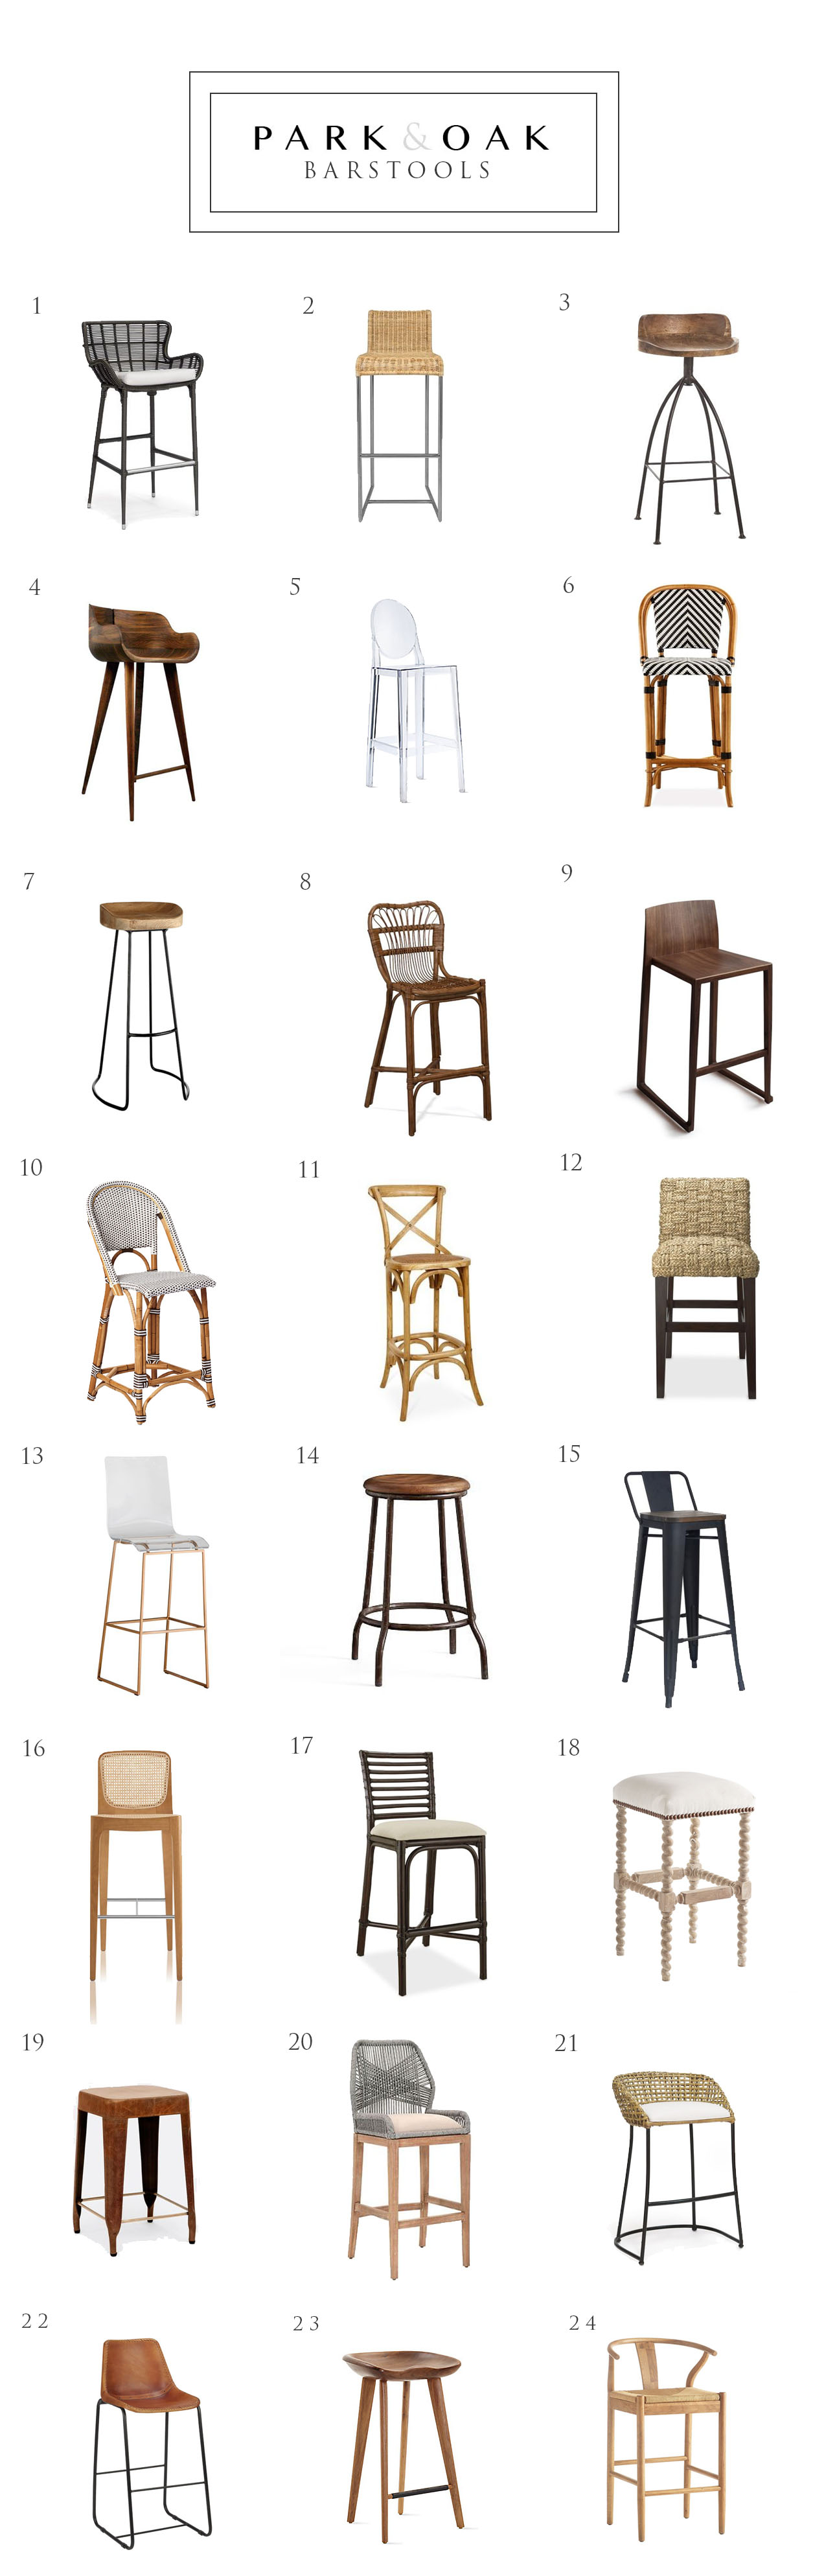 28 Barstools Barstools Park And Oak Interior Design